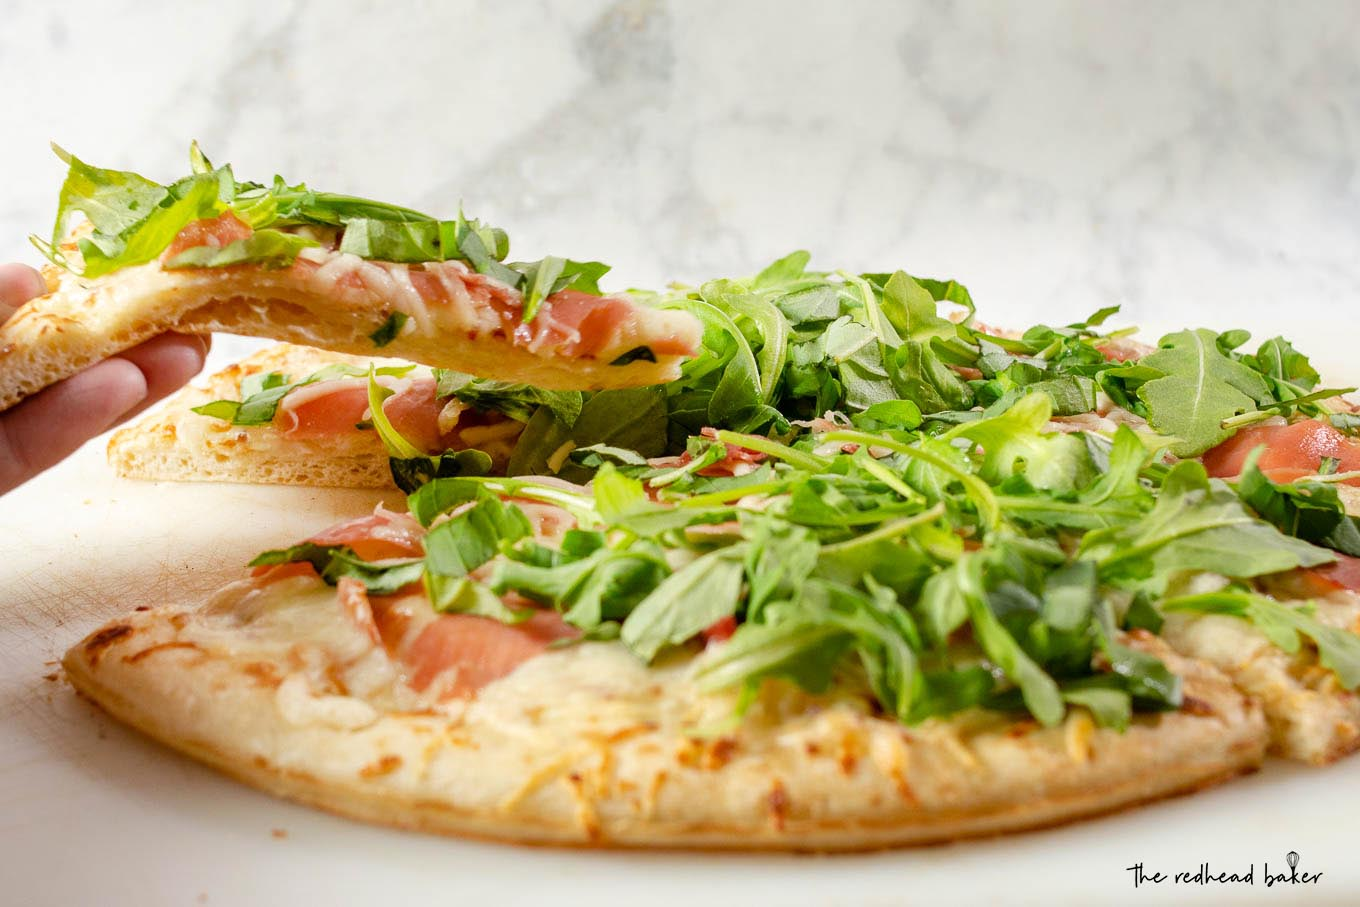 A slice of white pizza with prosciutto and arugula being lifted from the rest of the pizza